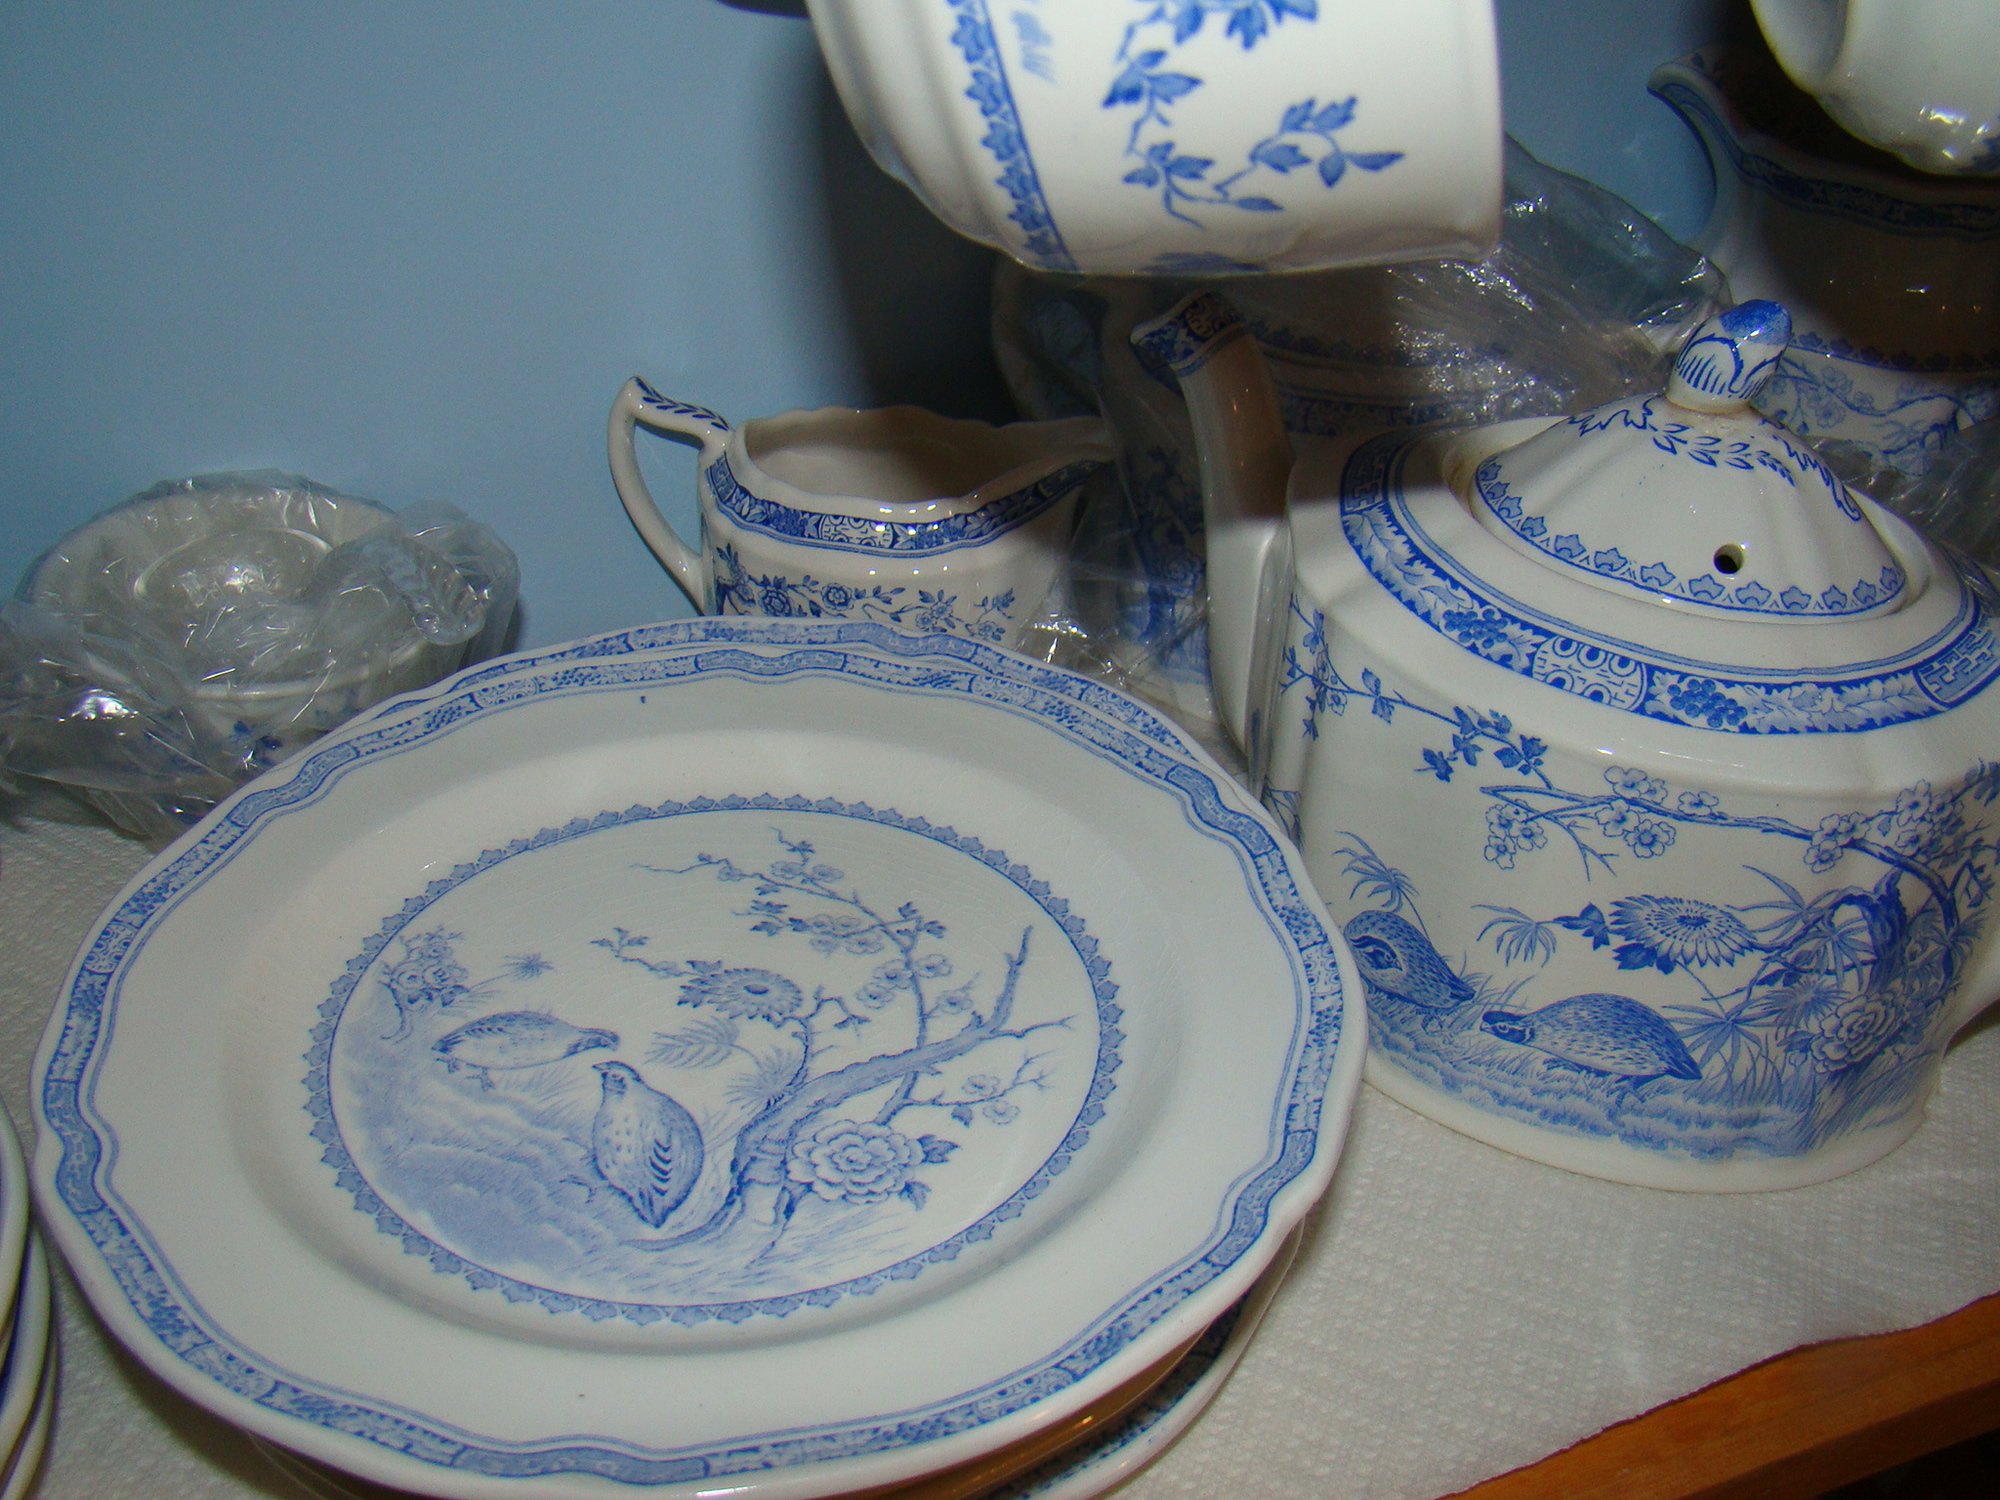 Gamage Antiques - your source for Antiques, Appraisals, Auctions and much more